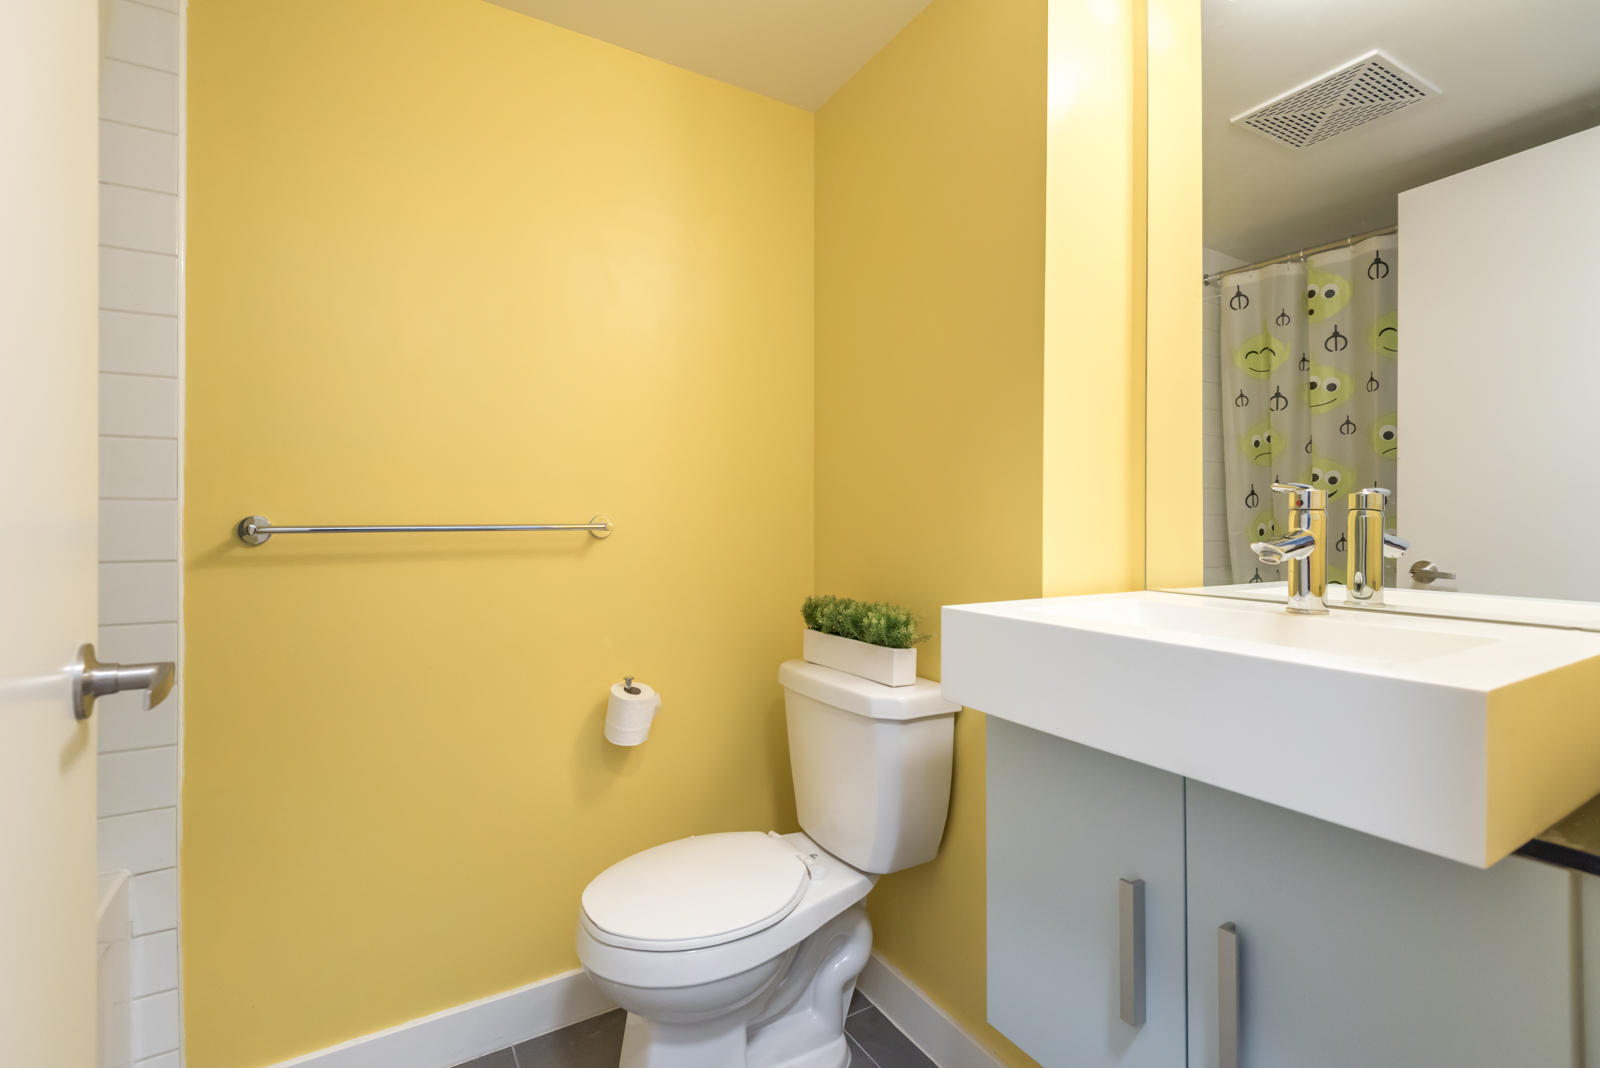 Another washroom; this is less in size yet colourful and pretty.